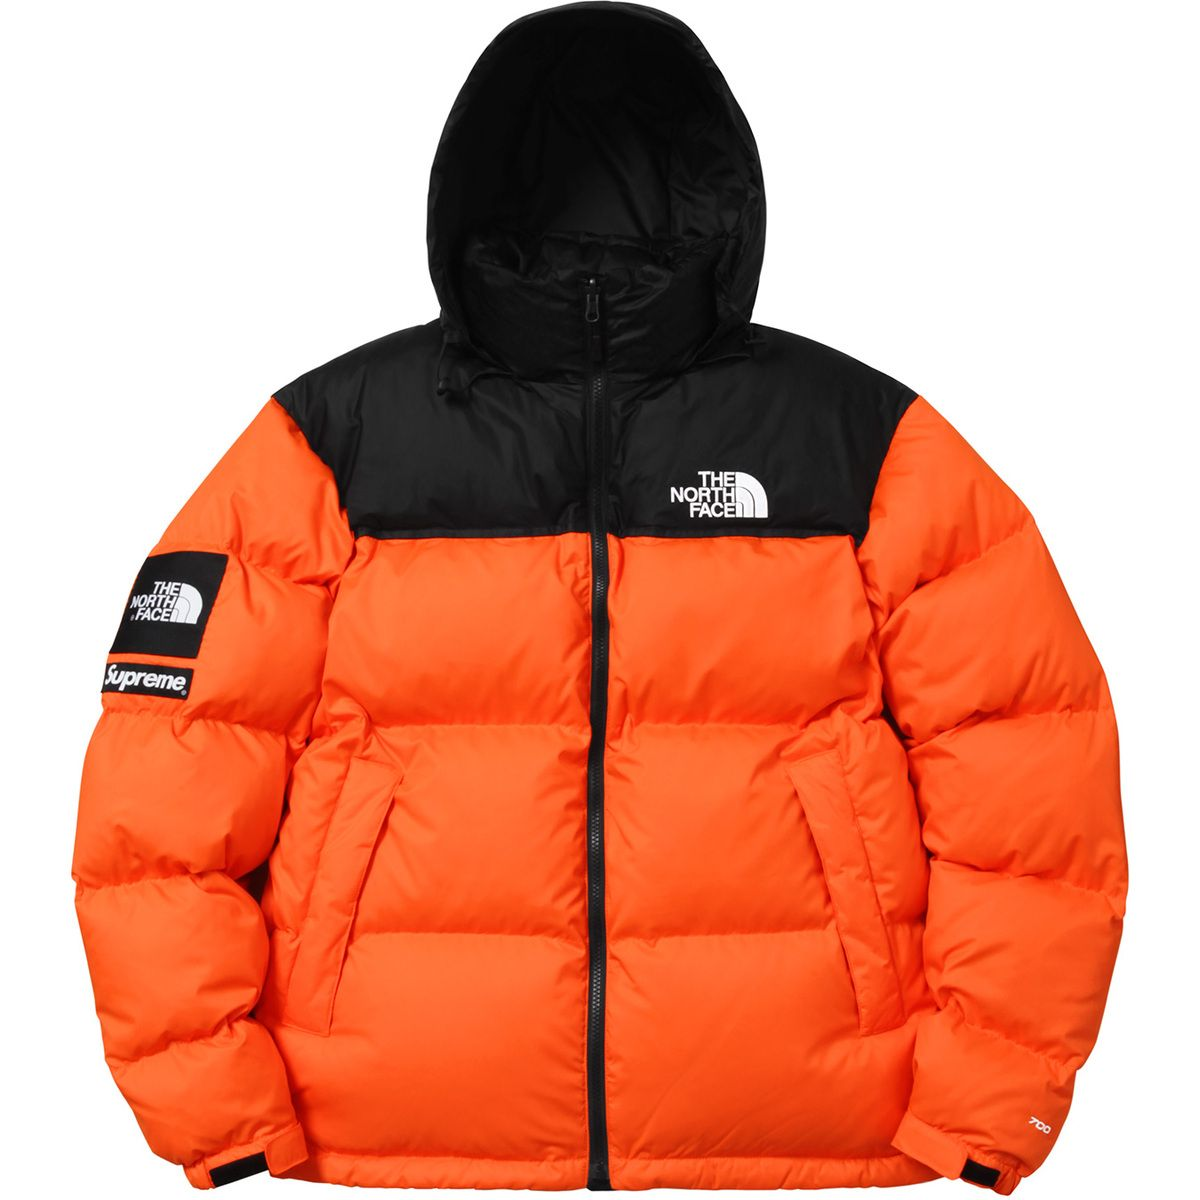 d258809d0b Supreme Orange North Face Jacket